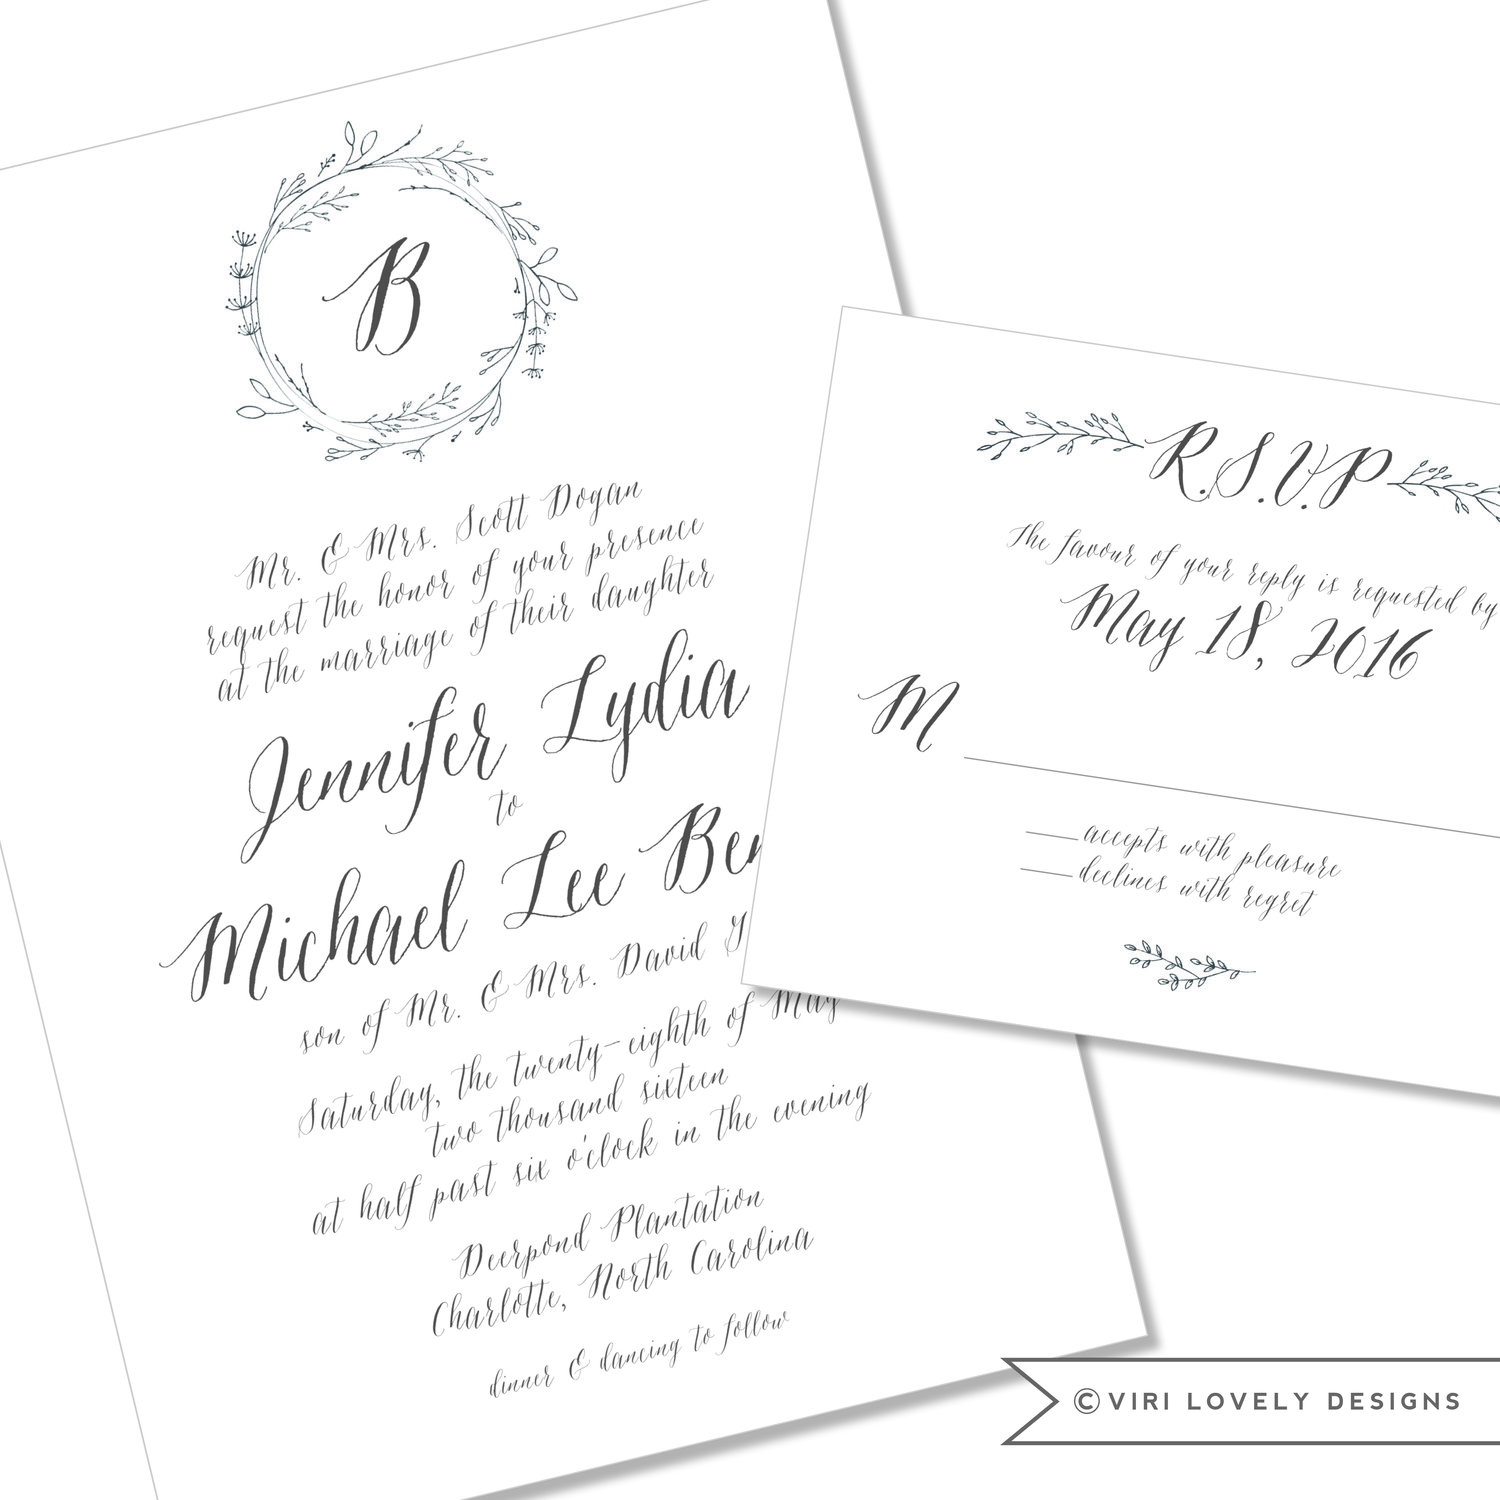 Viri Lovely Designs | Custom Wedding Invitations | Event Invitations ...